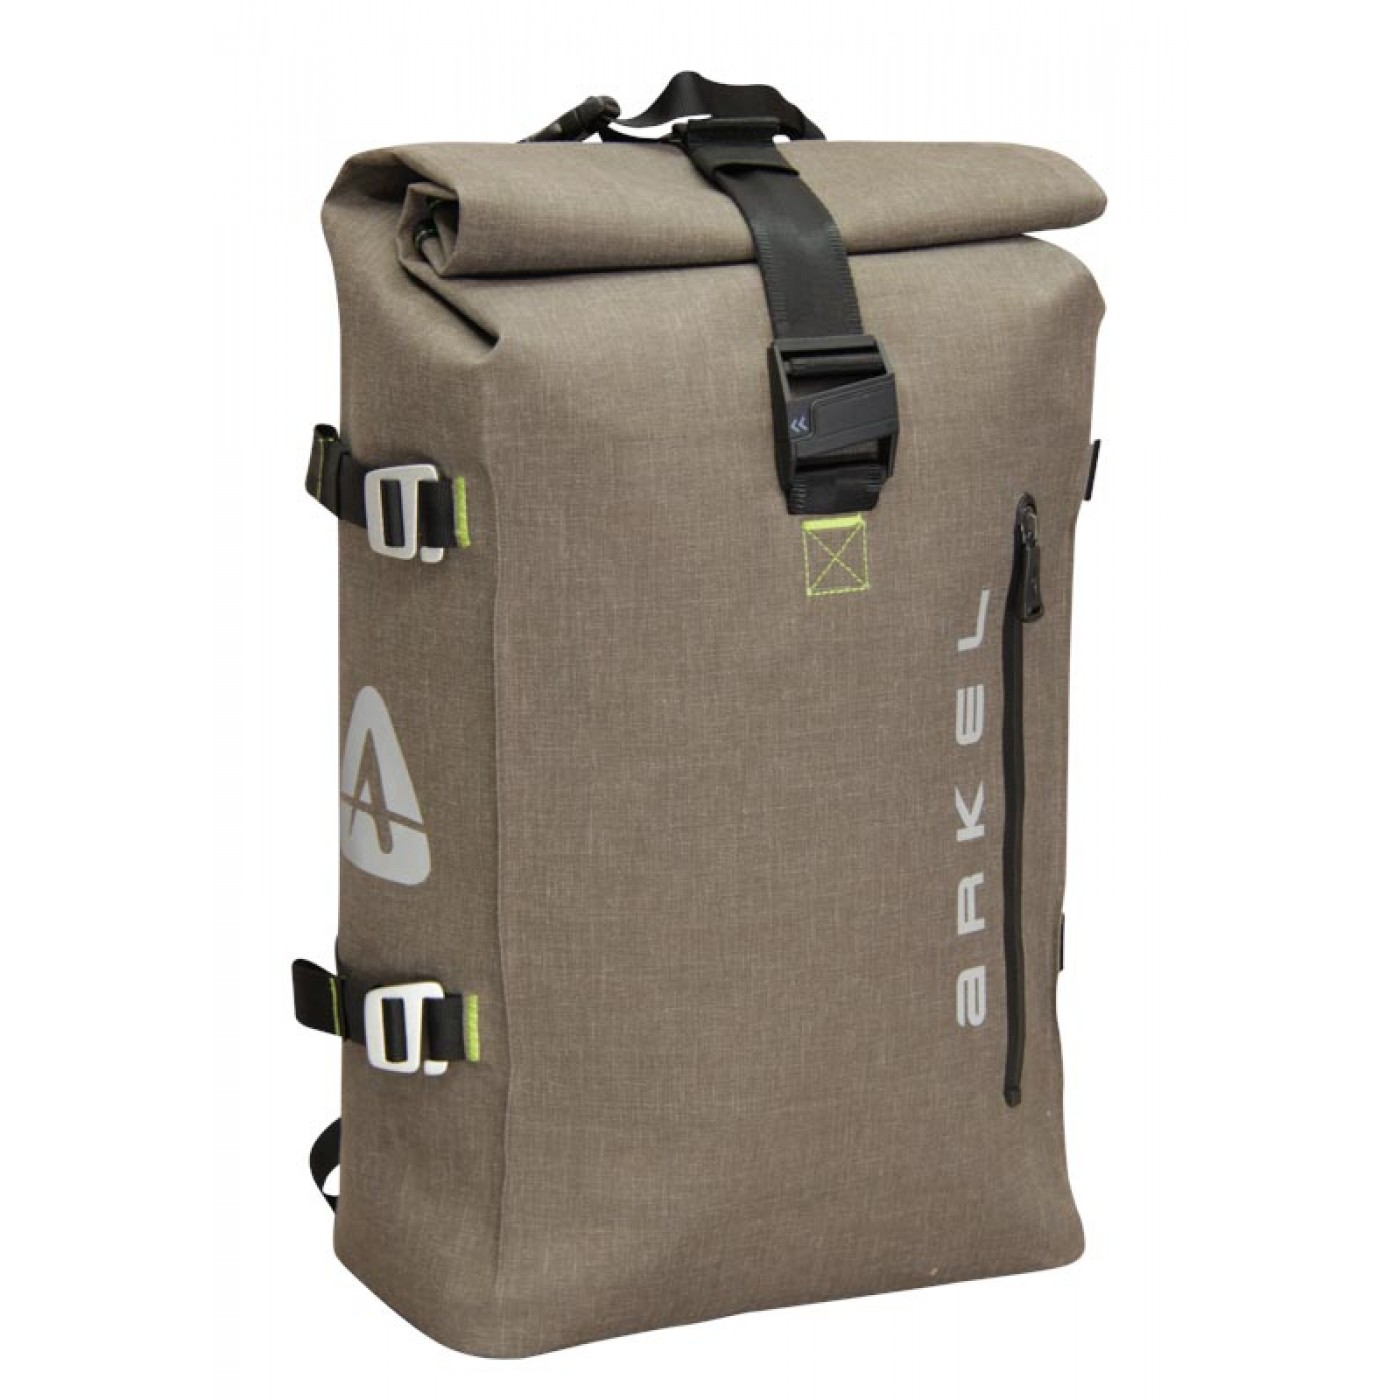 Arkel Drypack cycling backpack in the color coffee 58a9b3d8f0508